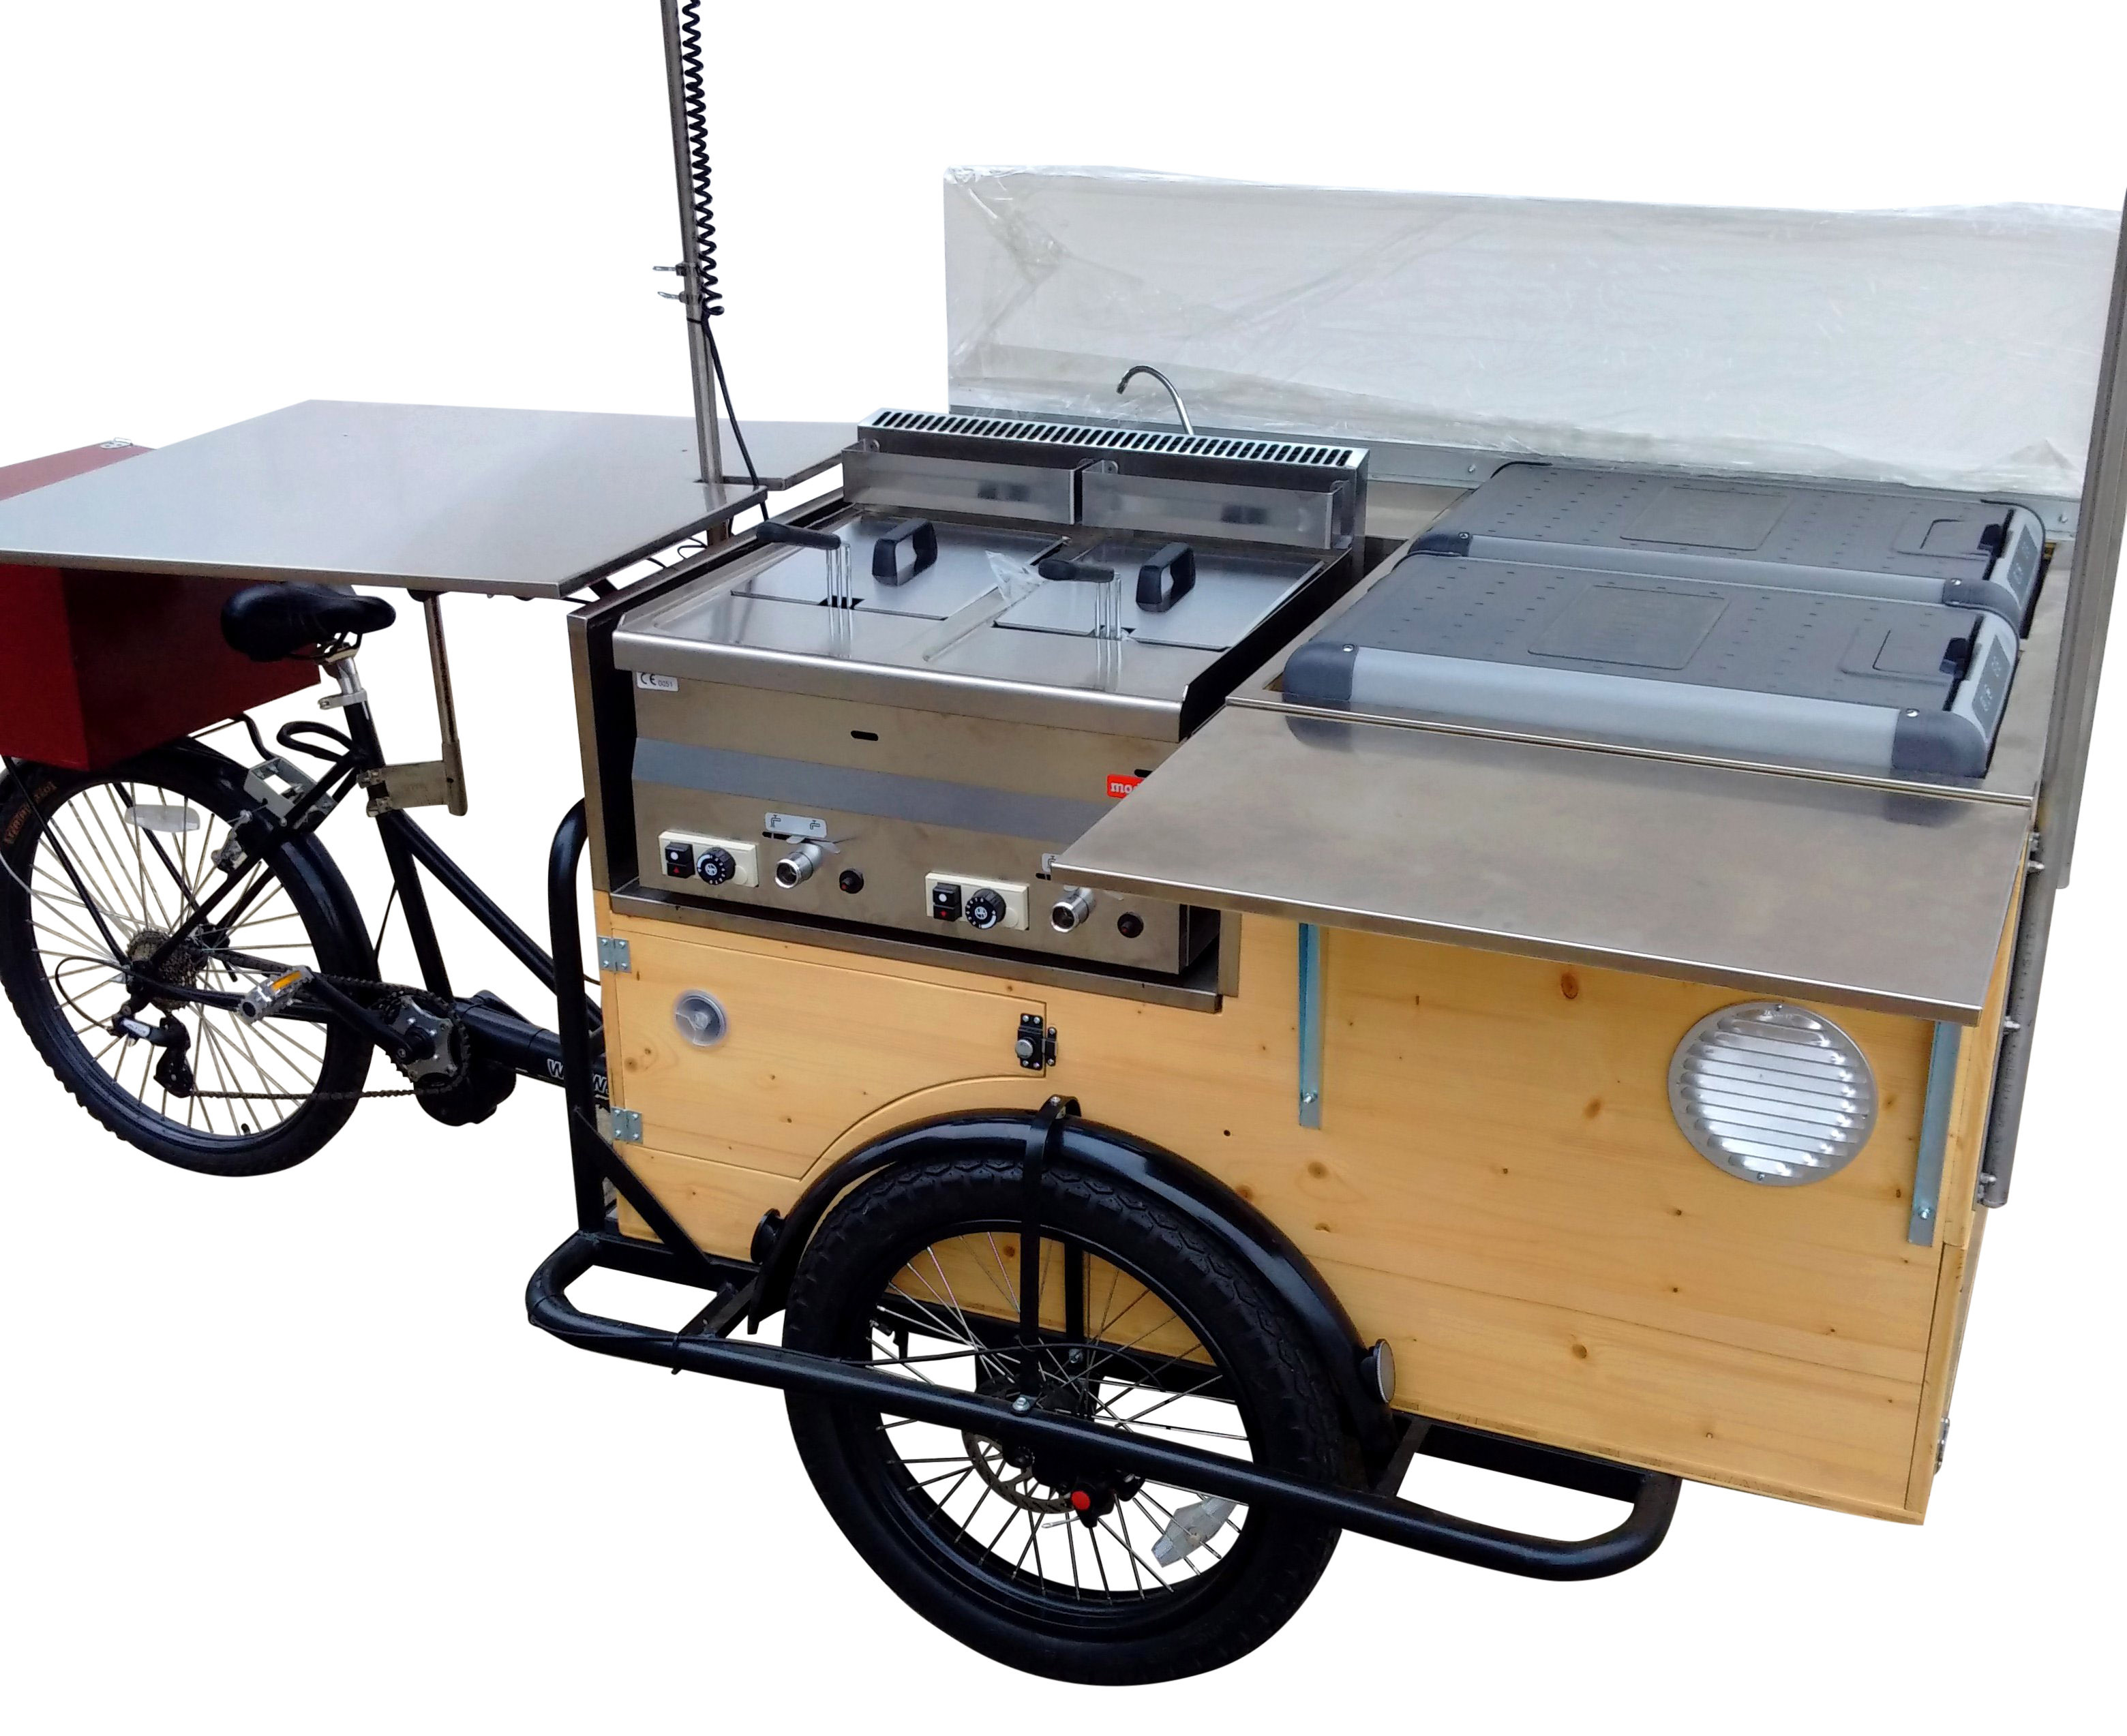 STREET_FOOD_BIKE_QUADRA_FRIGGITRICE_IN_LEGNO_TRICICLO_CARGO_BIKE_27